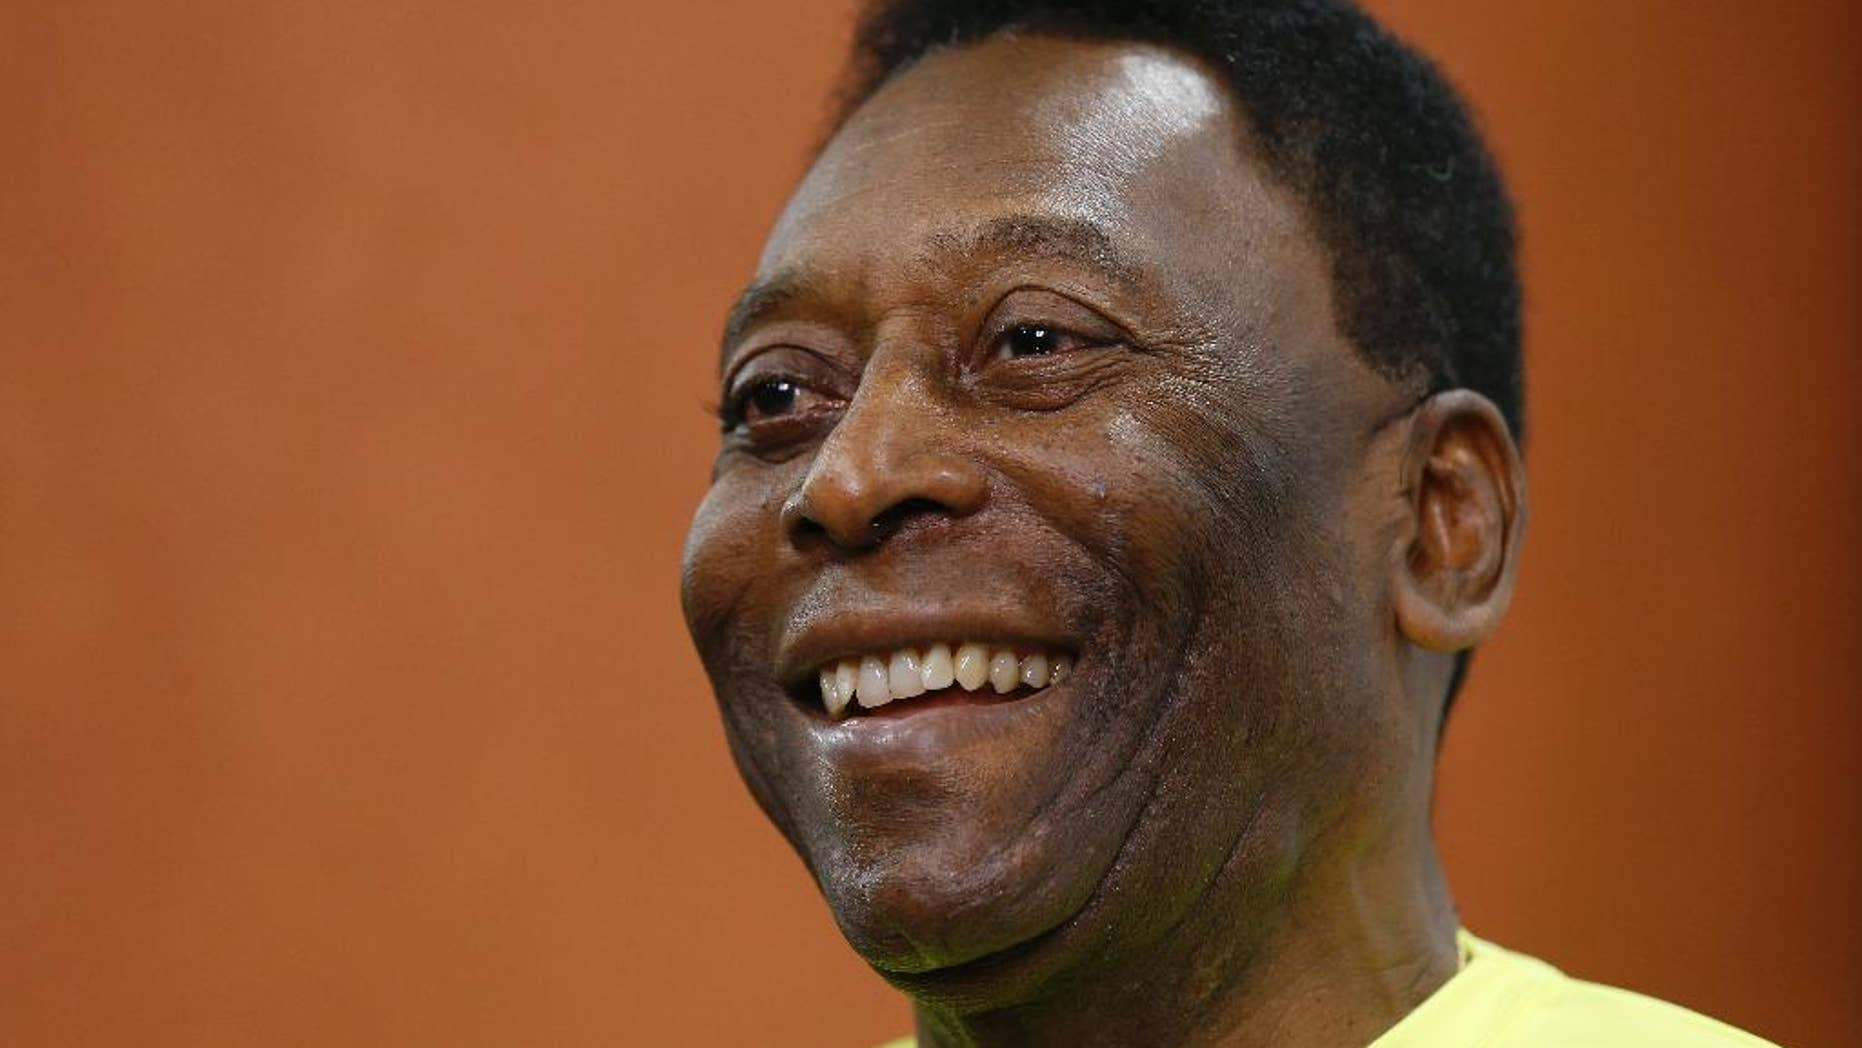 FILE - In this March 20, 2015, file photo, Brazilian soccer legend Pele smiles during a media opportunity at a restaurant in London. A Brazilian hospital says Pele is hospitalized in Sao Paulo. Mirtes Bogea, a press officer for the Albert Einstein hospital, said Saturday, July 18, 2015 she could only confirm Pele's hospitalization. She said she was not allowed to say when he was hospitalized or why. (AP Photo/Kirsty Wigglesworth,File)